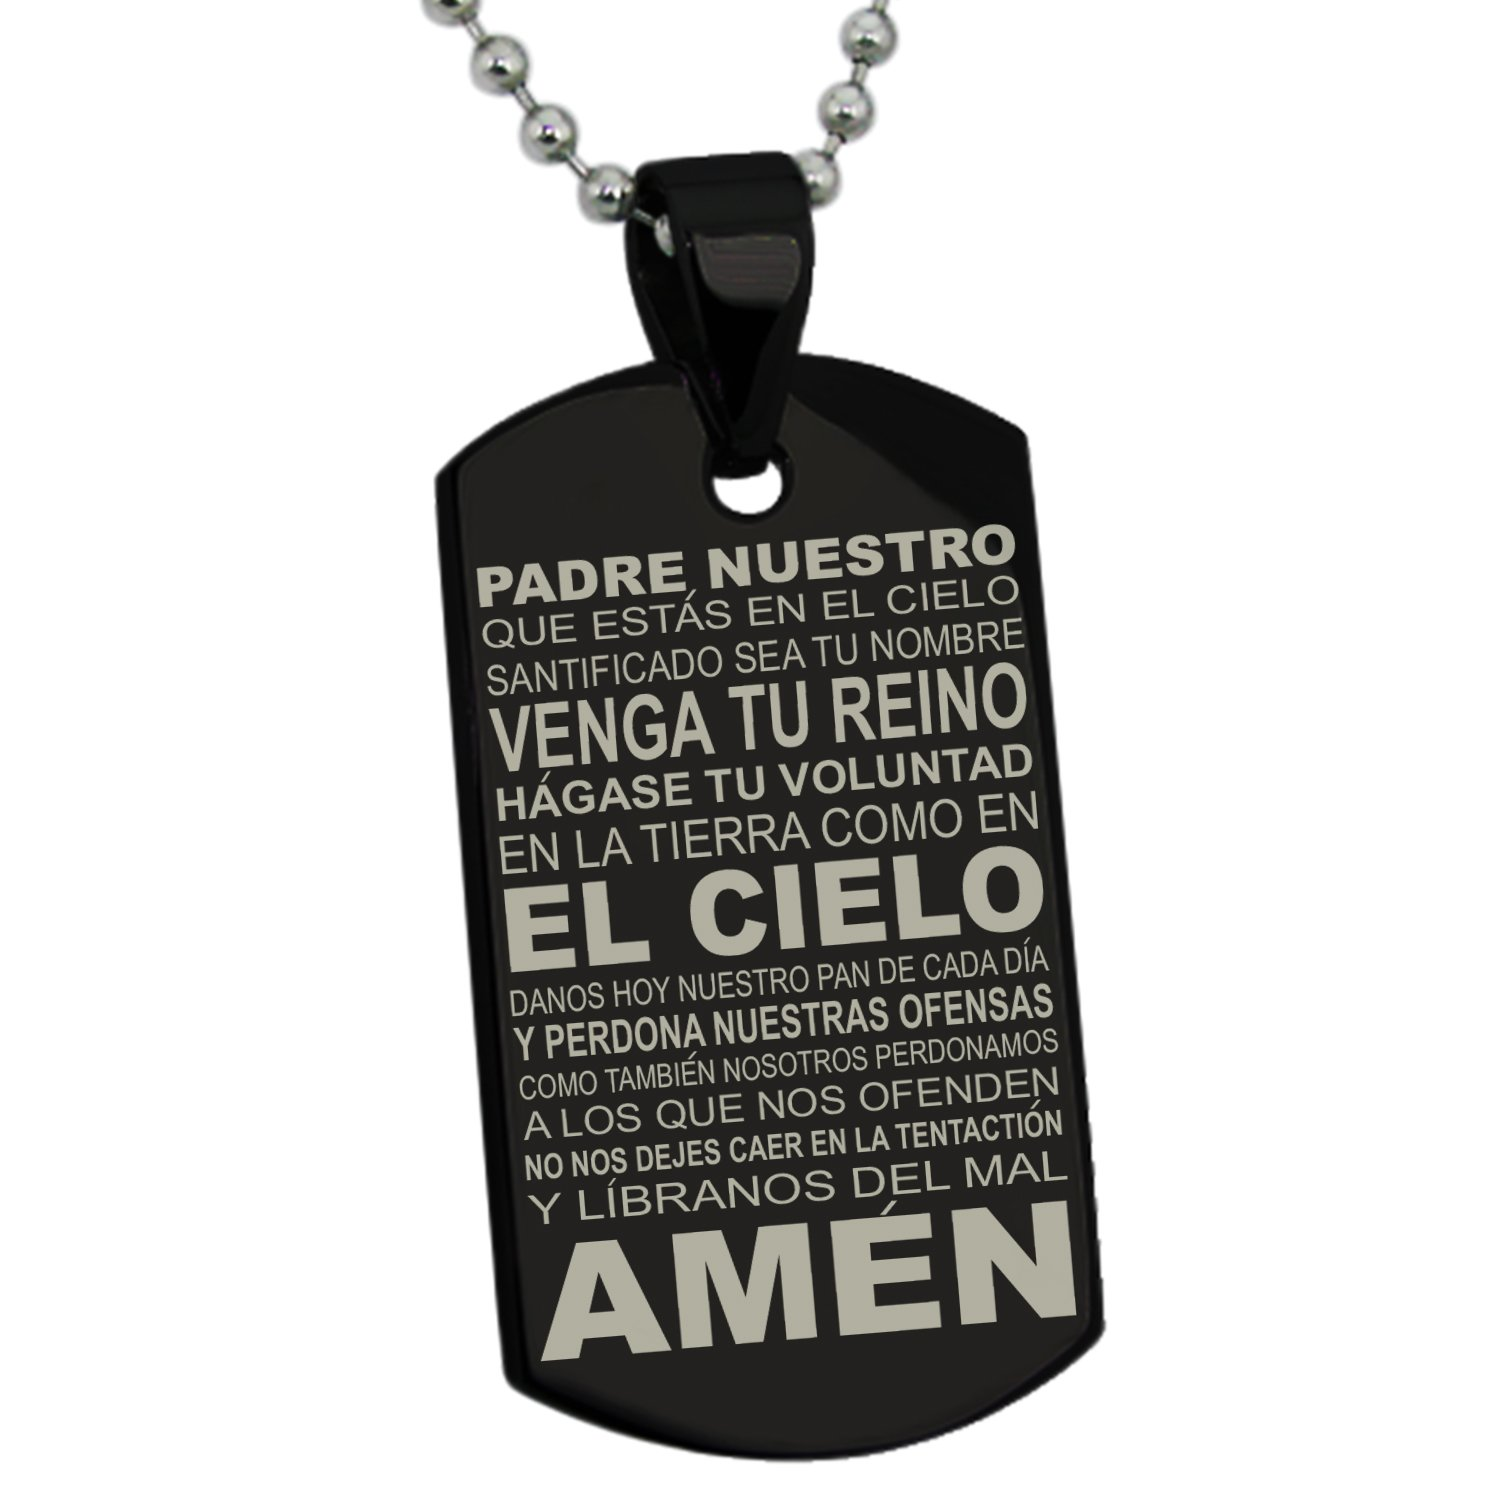 156c30367de70 Stainless Steel Lord's Prayer Spanish Translated Dog Tag Pendant Necklace